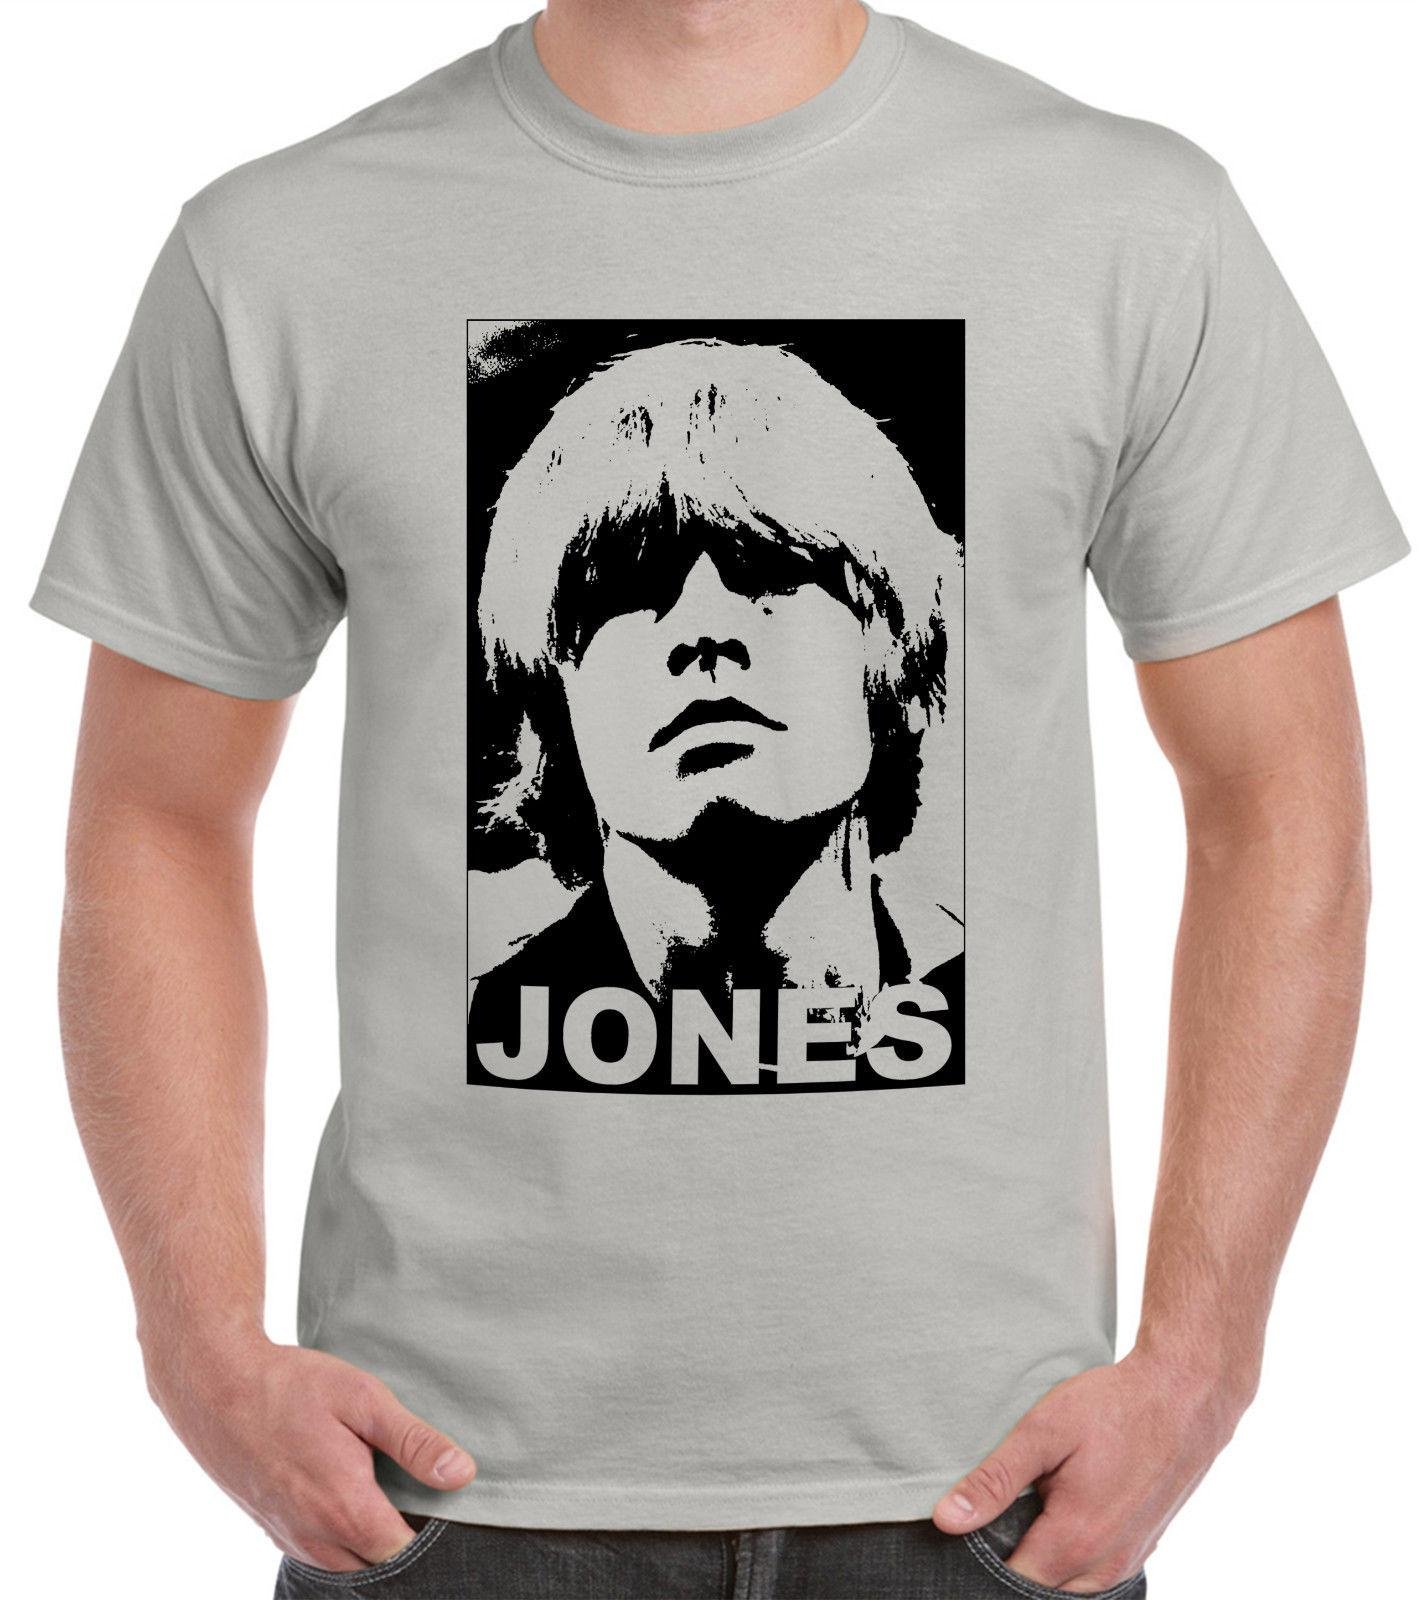 6053b1988c8a1 Tribute To Brian Jones Stone-Grey T-Shirt Jagger Funny free shipping Unisex  Casual Tshirt top